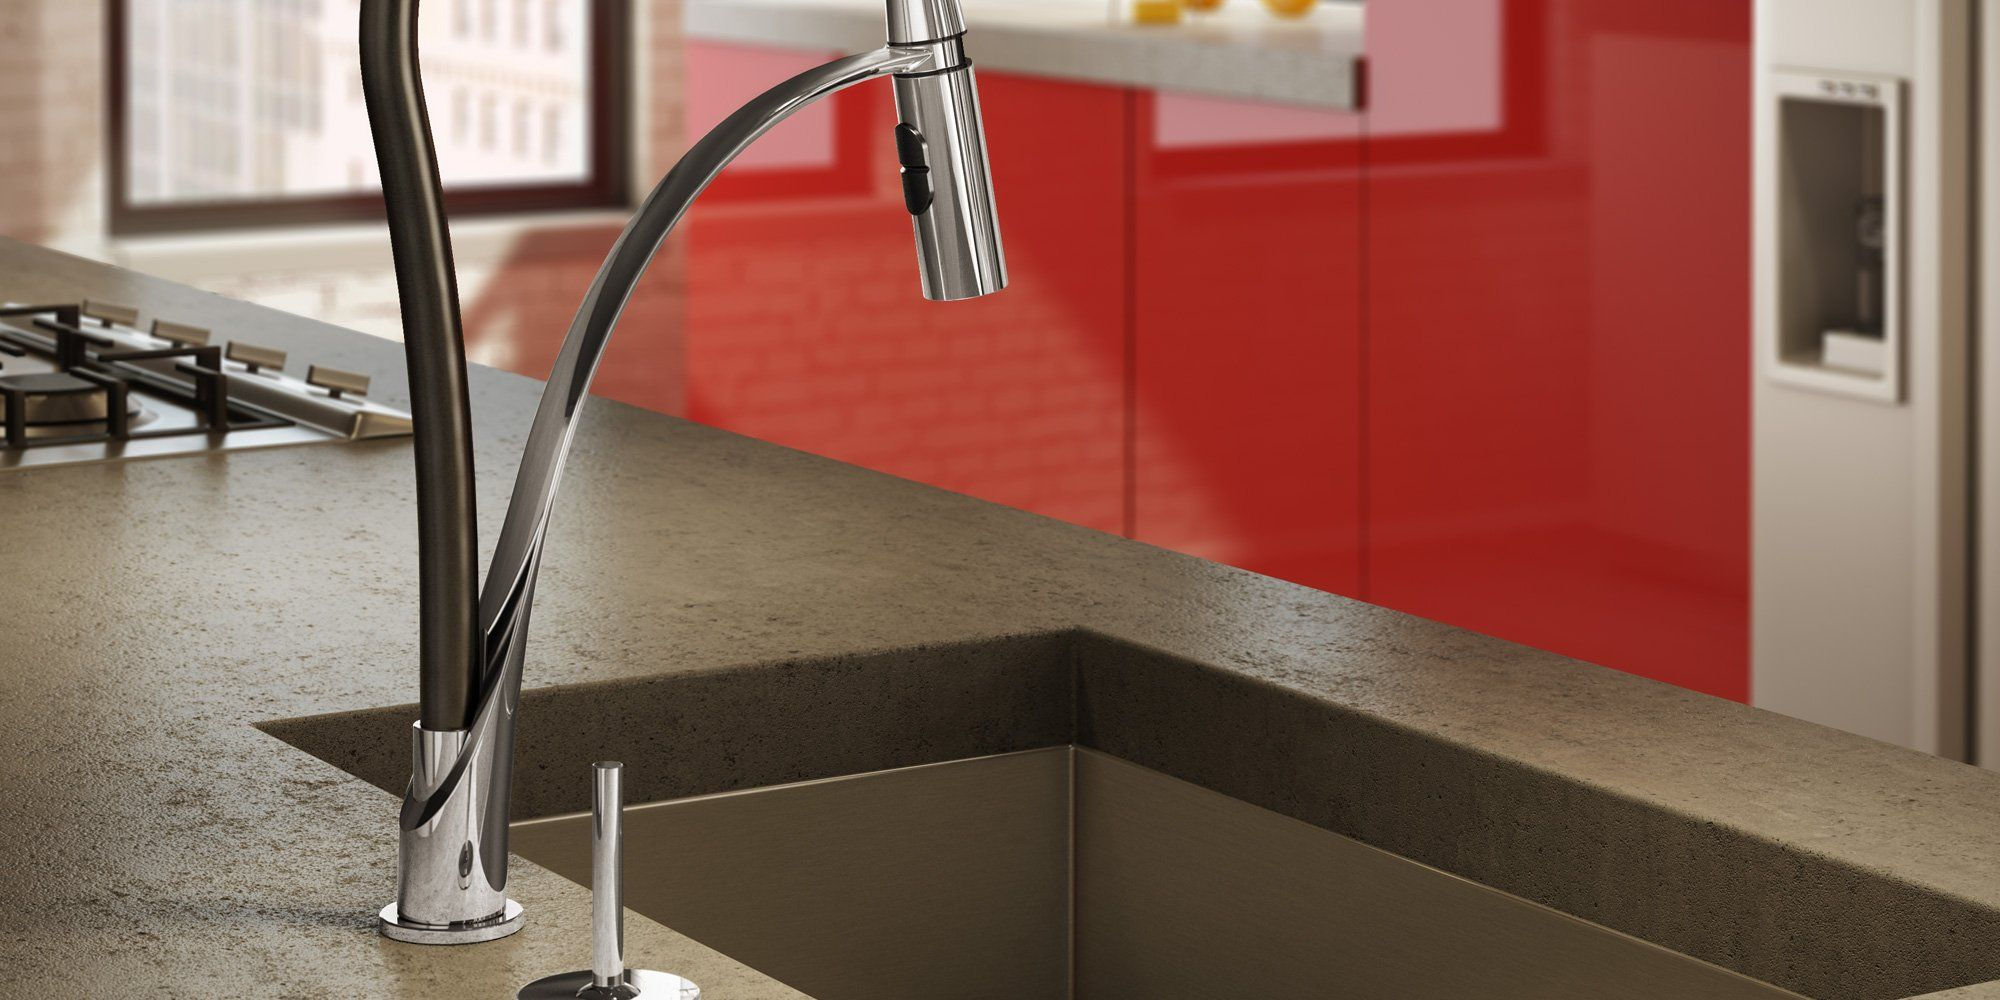 Aquabrass faucet design for kitchen